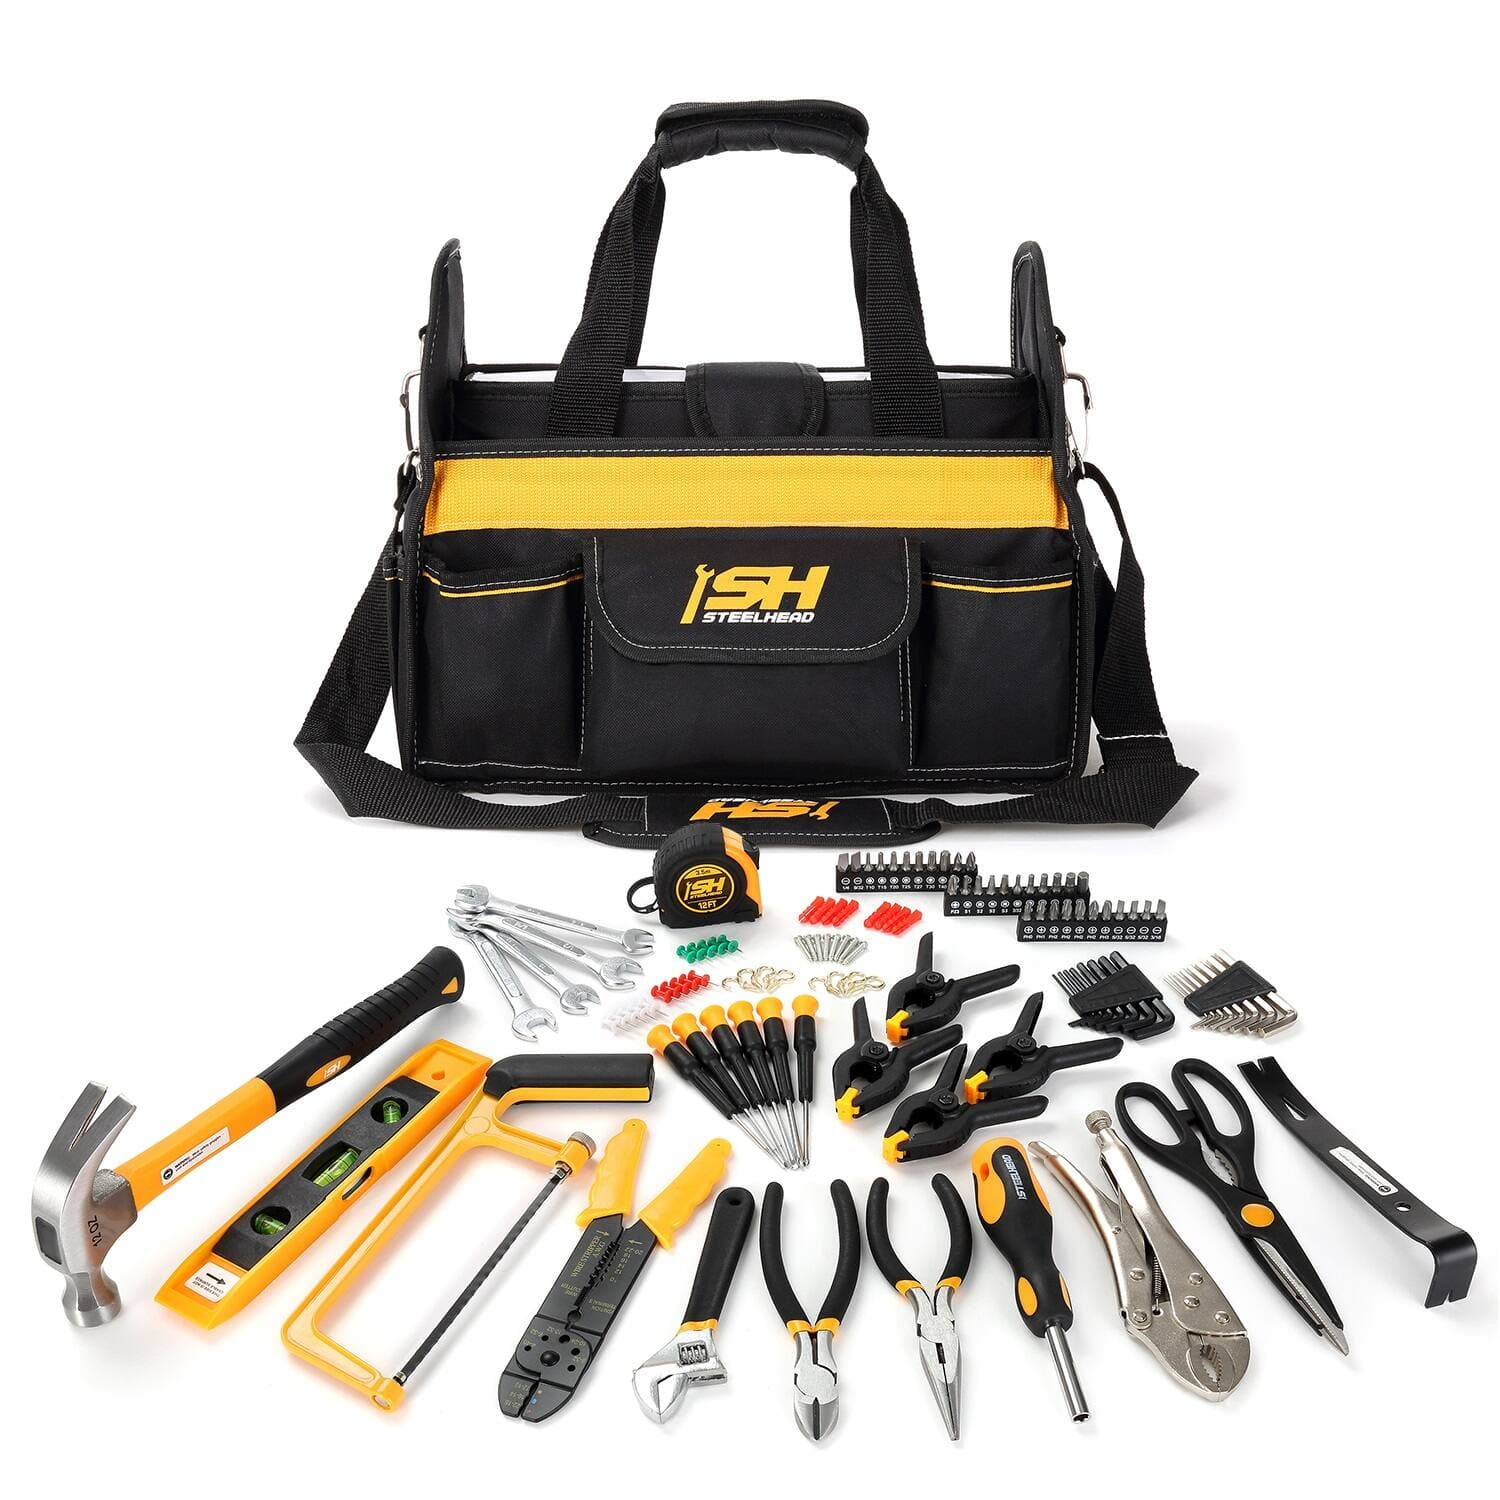 """STEELHEAD 117-Piece Tool Set, Screwdriver Handle, 33 Bits, Screwdrivers, Pliers, Tape Measure, 9"""" Level, Hammer, Prybar, Wrenches, Scissors, Saw, Clamps, 14"""" Tool Tote -$49.99"""